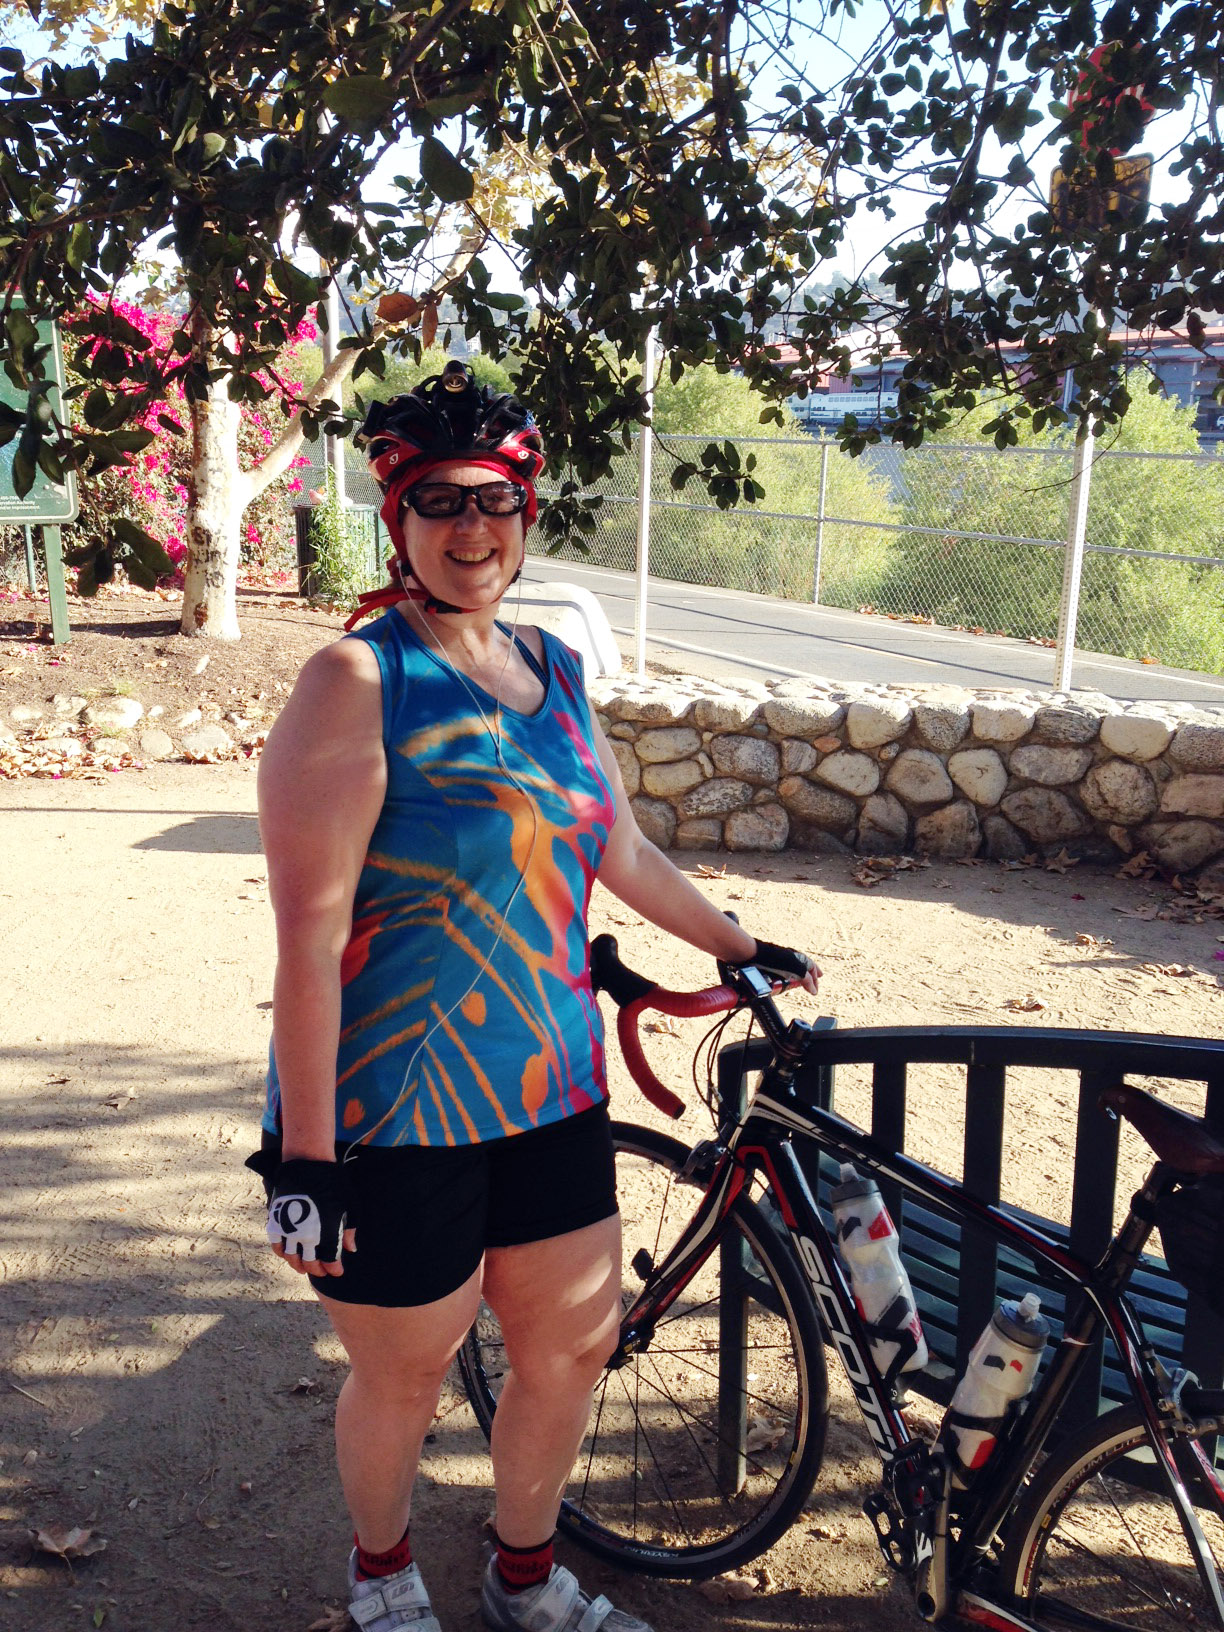 Laurie in bike shorts